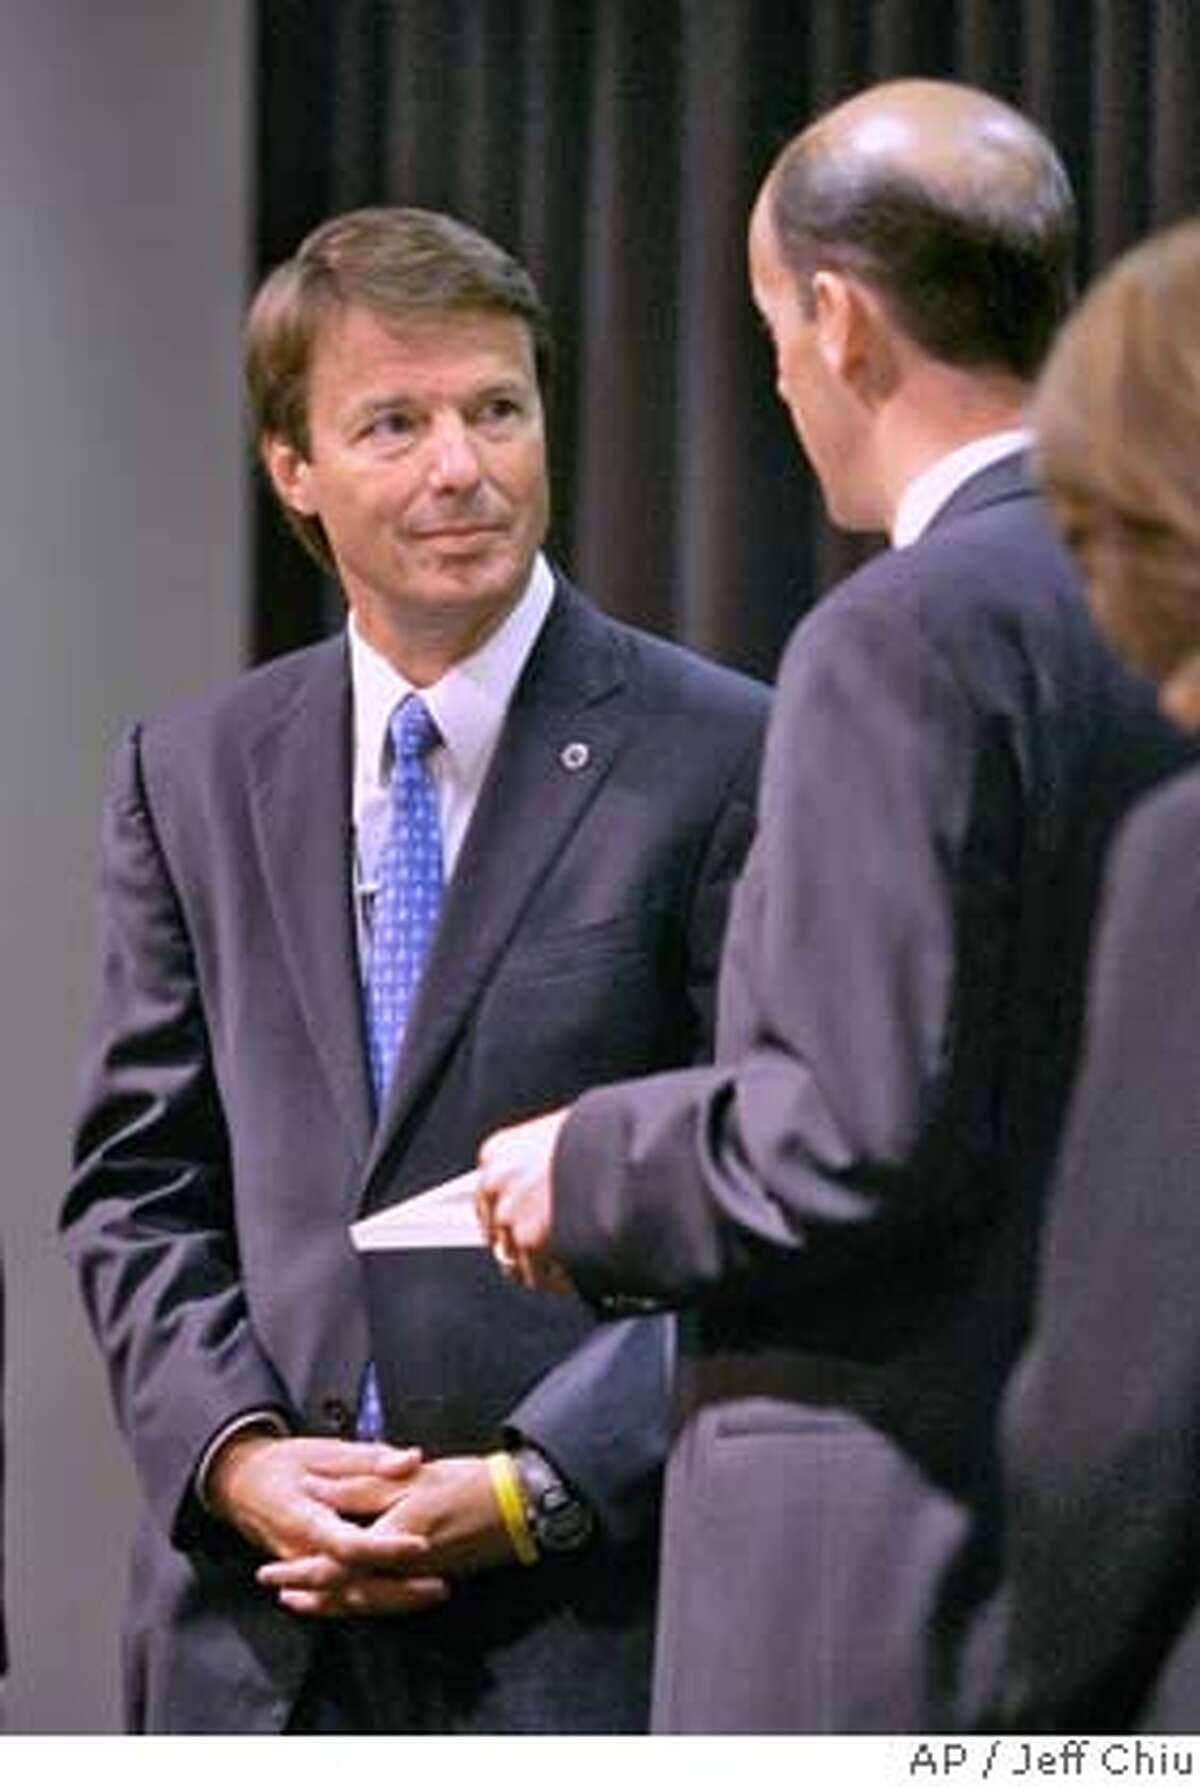 Democratic presidential hopeful John Edwards, left, speaks to members of the Silicon Valley Leadership Group on Wednesday, Aug. 1, 2007, in Santa Clara, Calif. (AP Photo/Jeff Chiu)